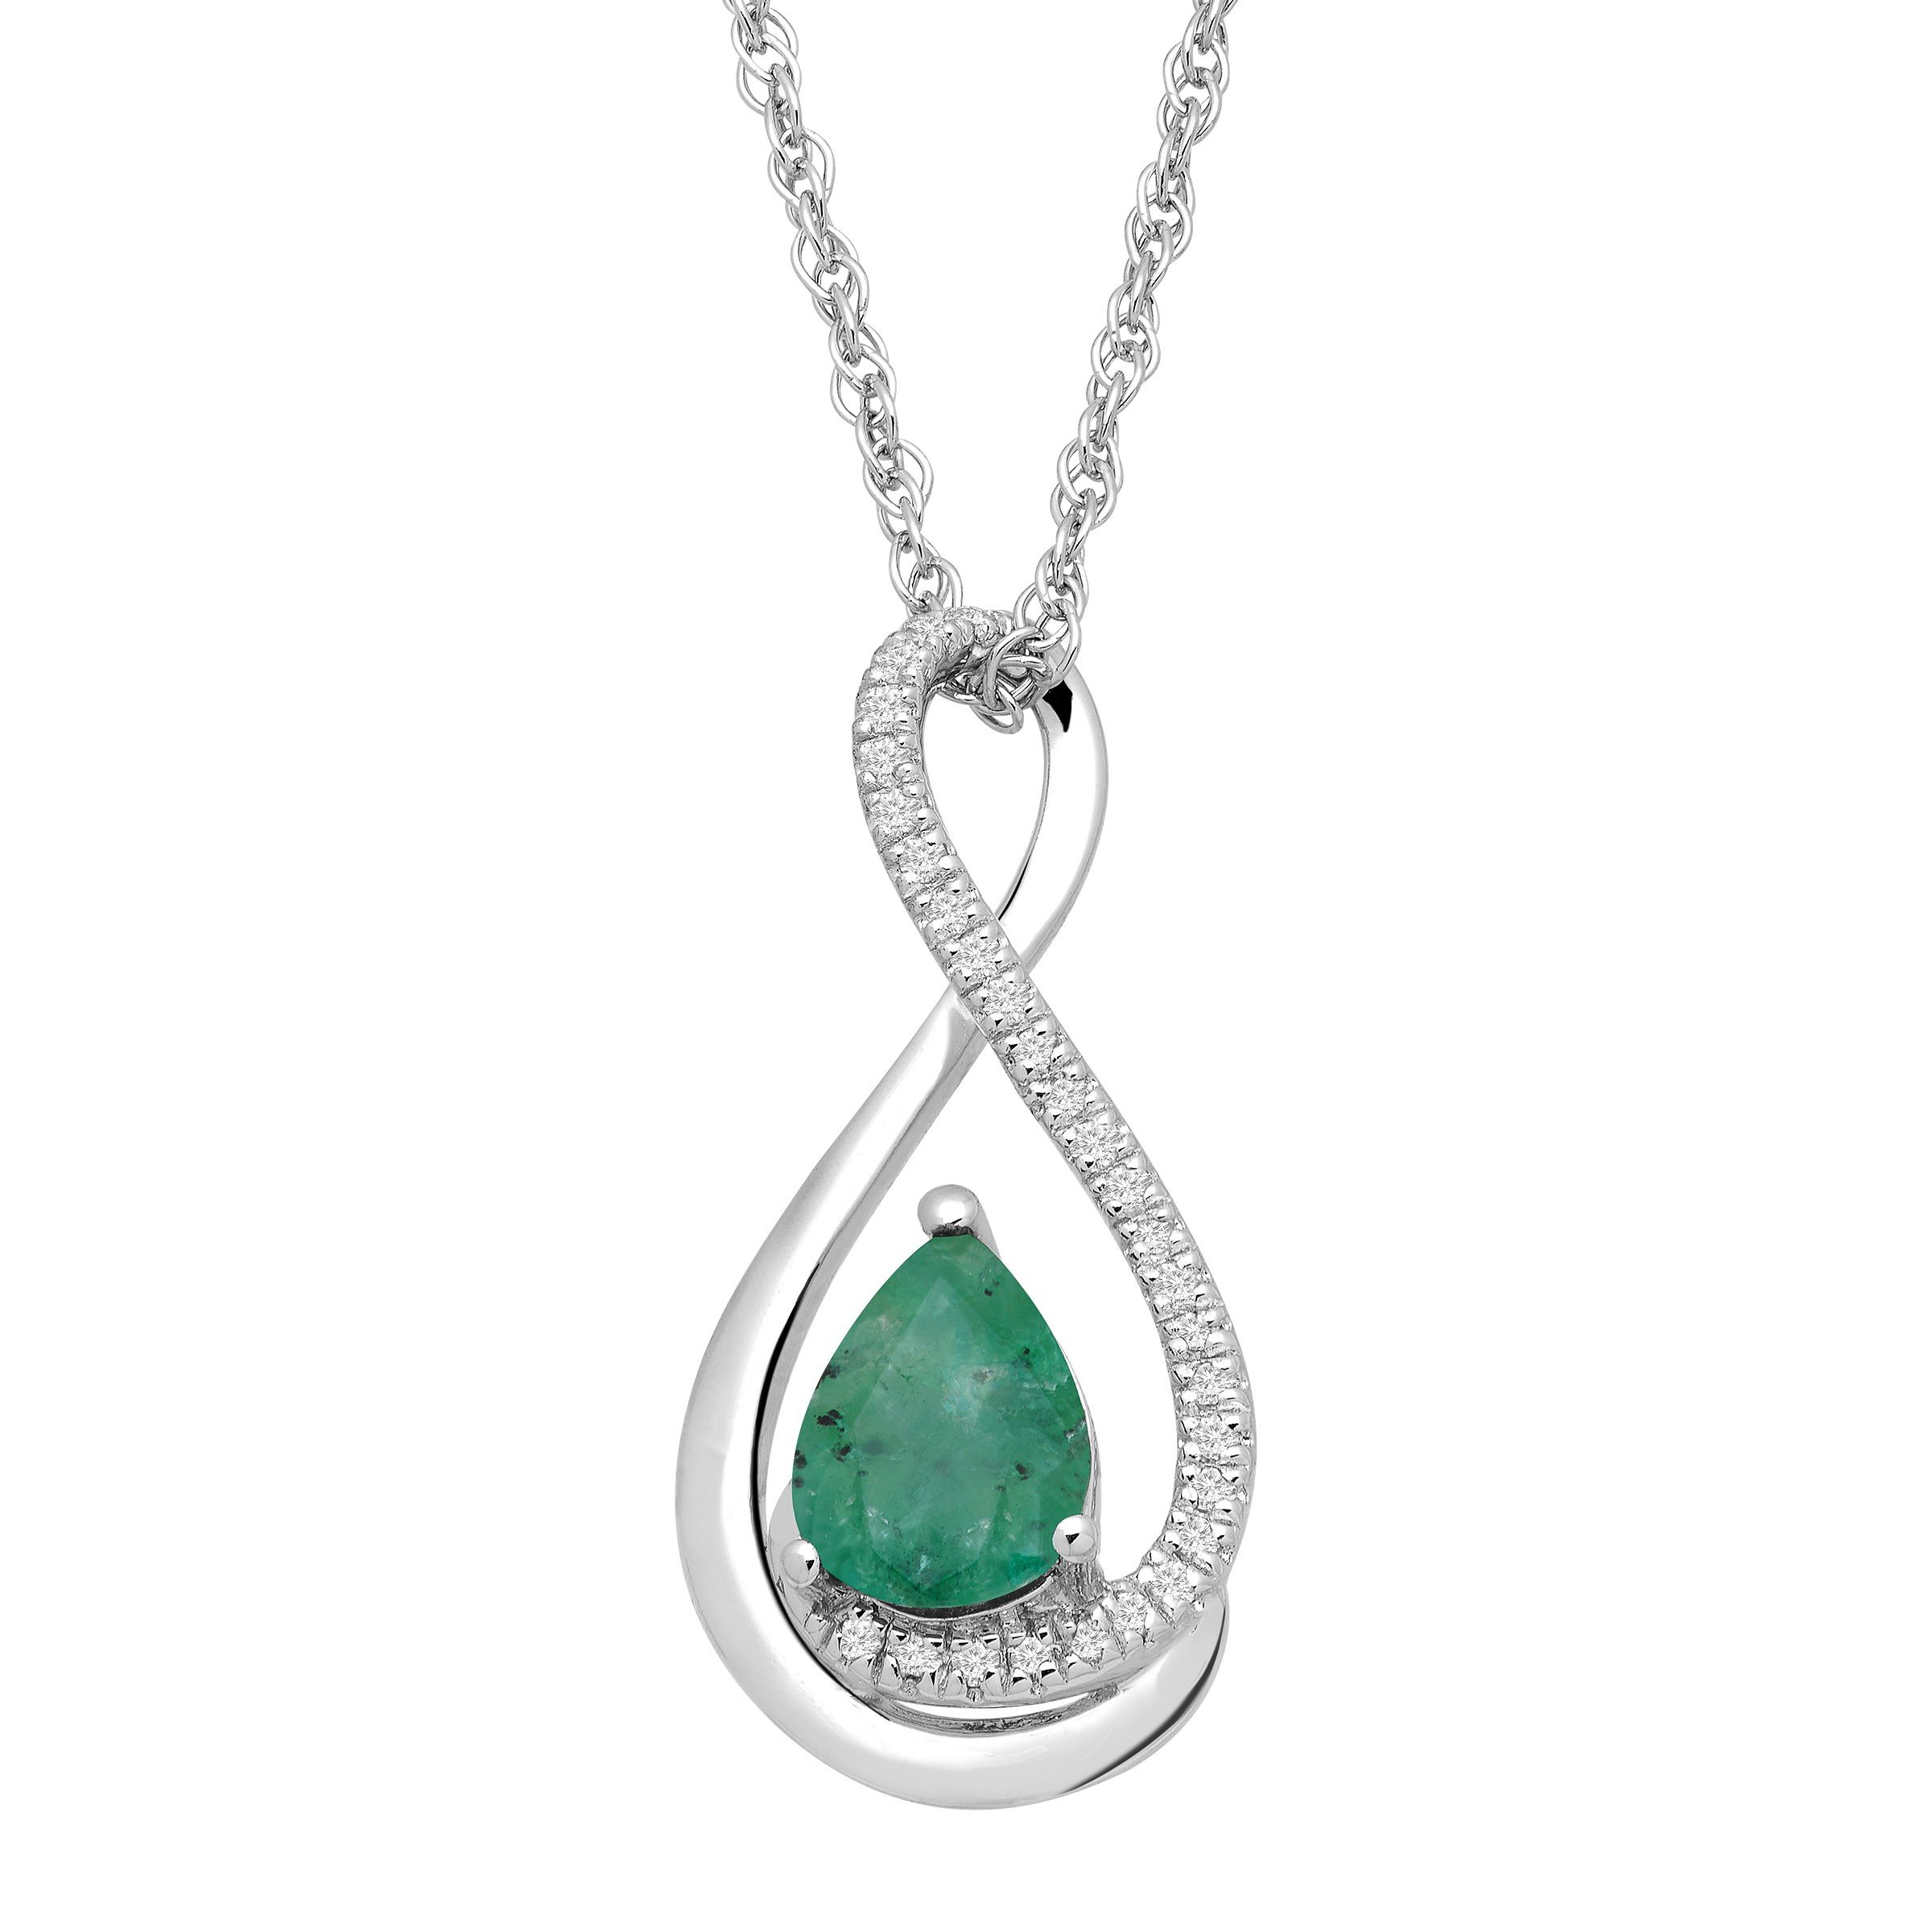 5/8 ct Natural Emerald Pendant Necklace with Diamonds in Sterling Silver